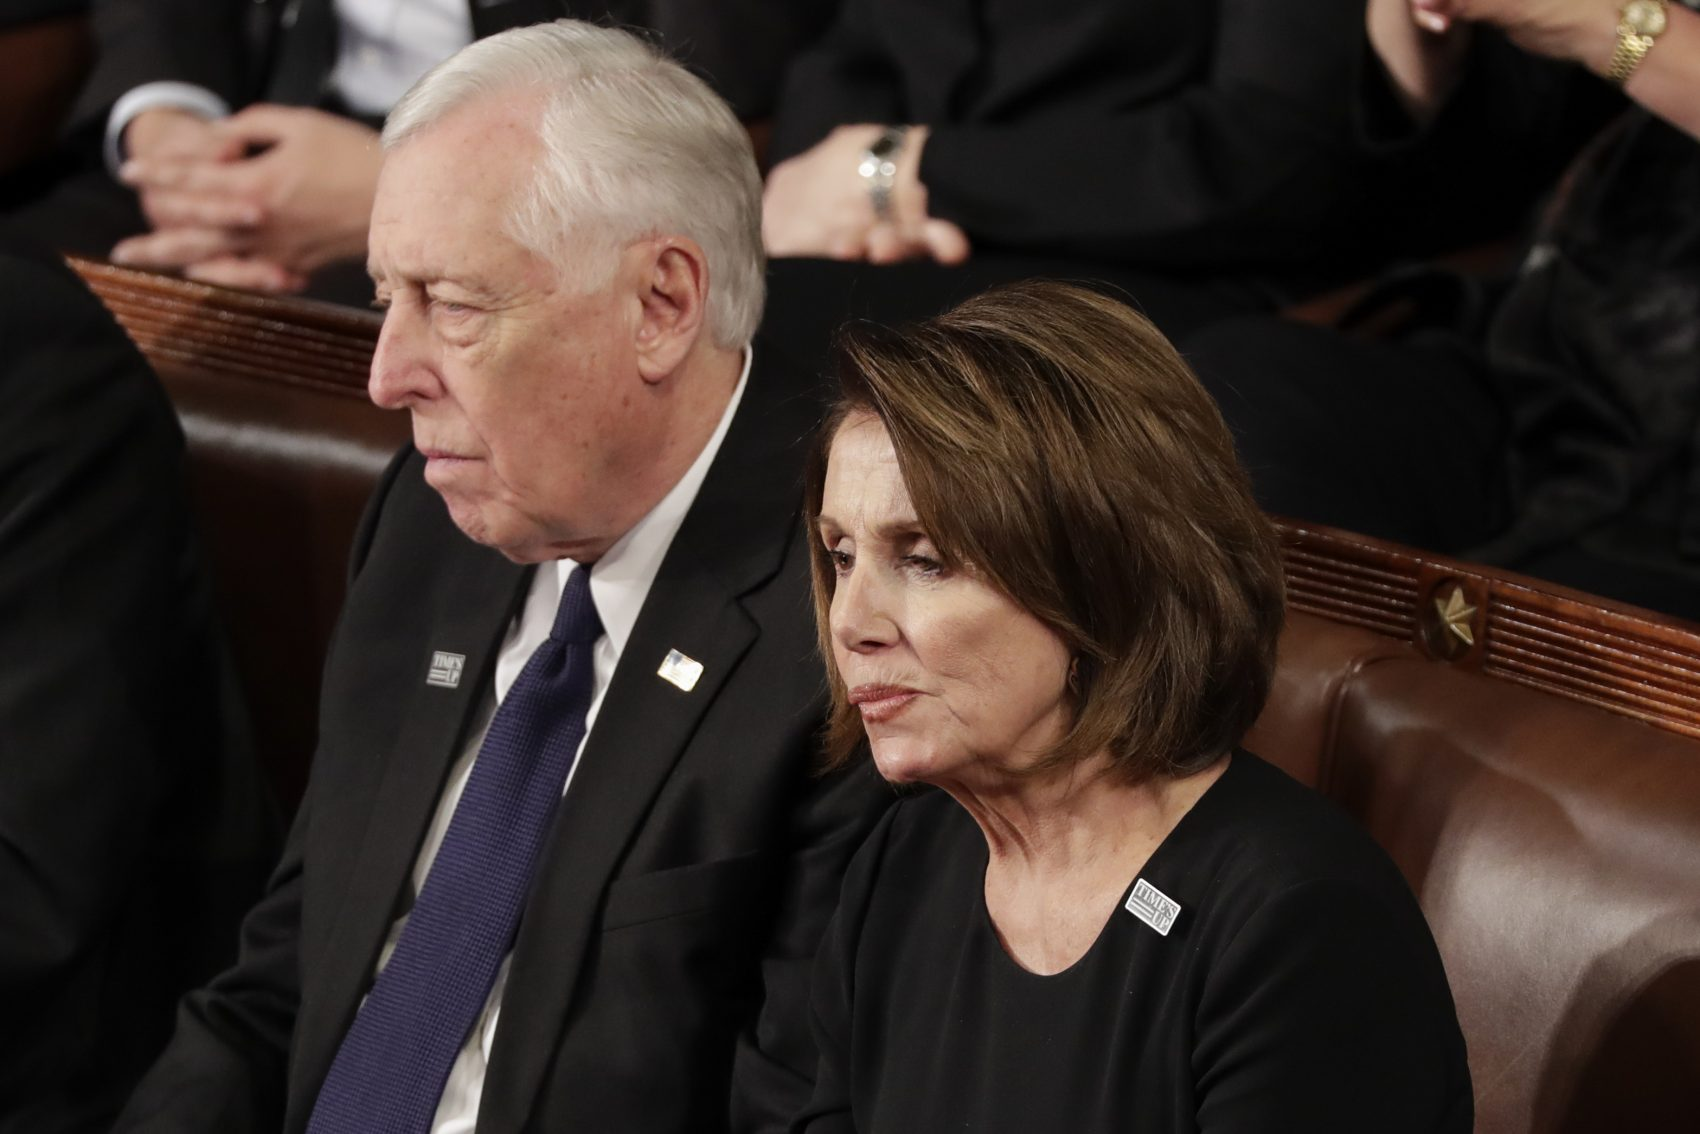 House Minority Leader Nancy Pelosi of California and Minority Whip Steny Hoyer, D-Md., listen to the State of the Union address to a joint session of Congress on Capitol Hill in Washington, Tuesday, Jan. 30, 2018. (J. Scott Applewhite/AP)